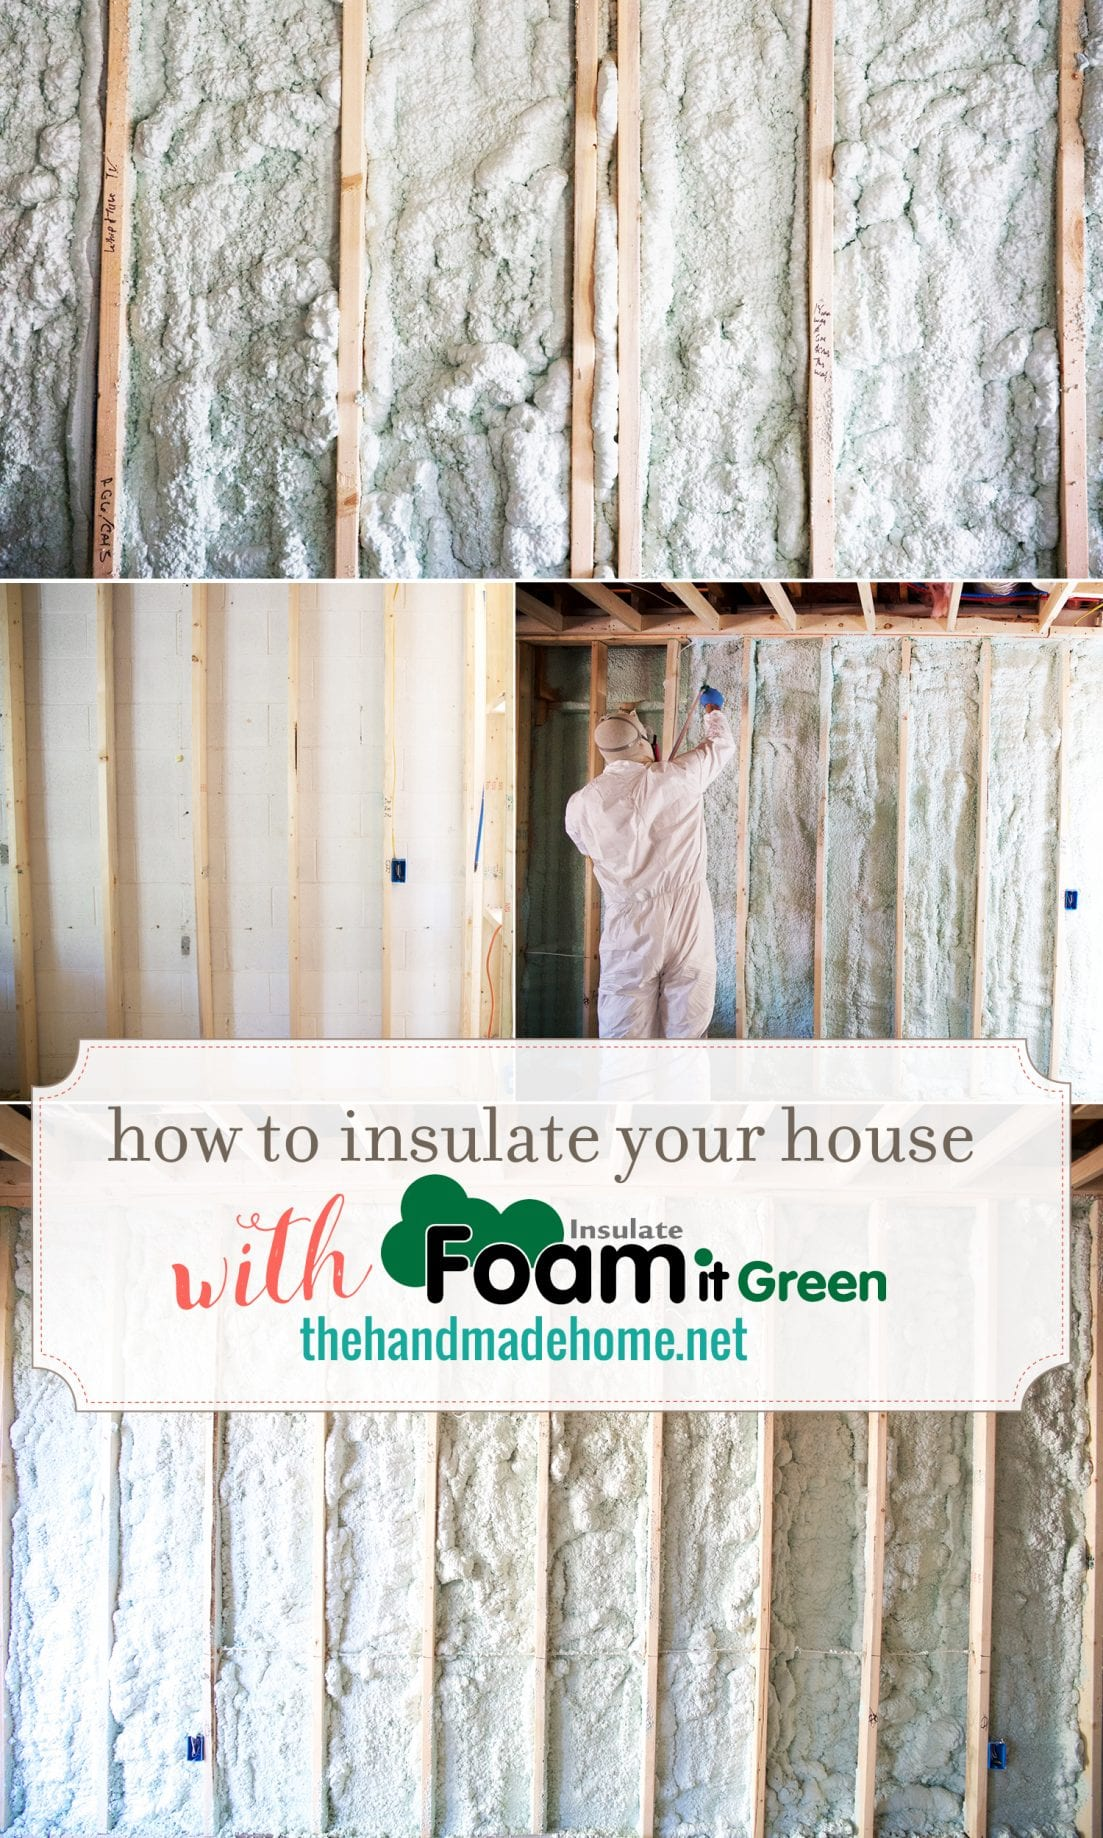 how to use spray insulation - foam it green - insulate you your home